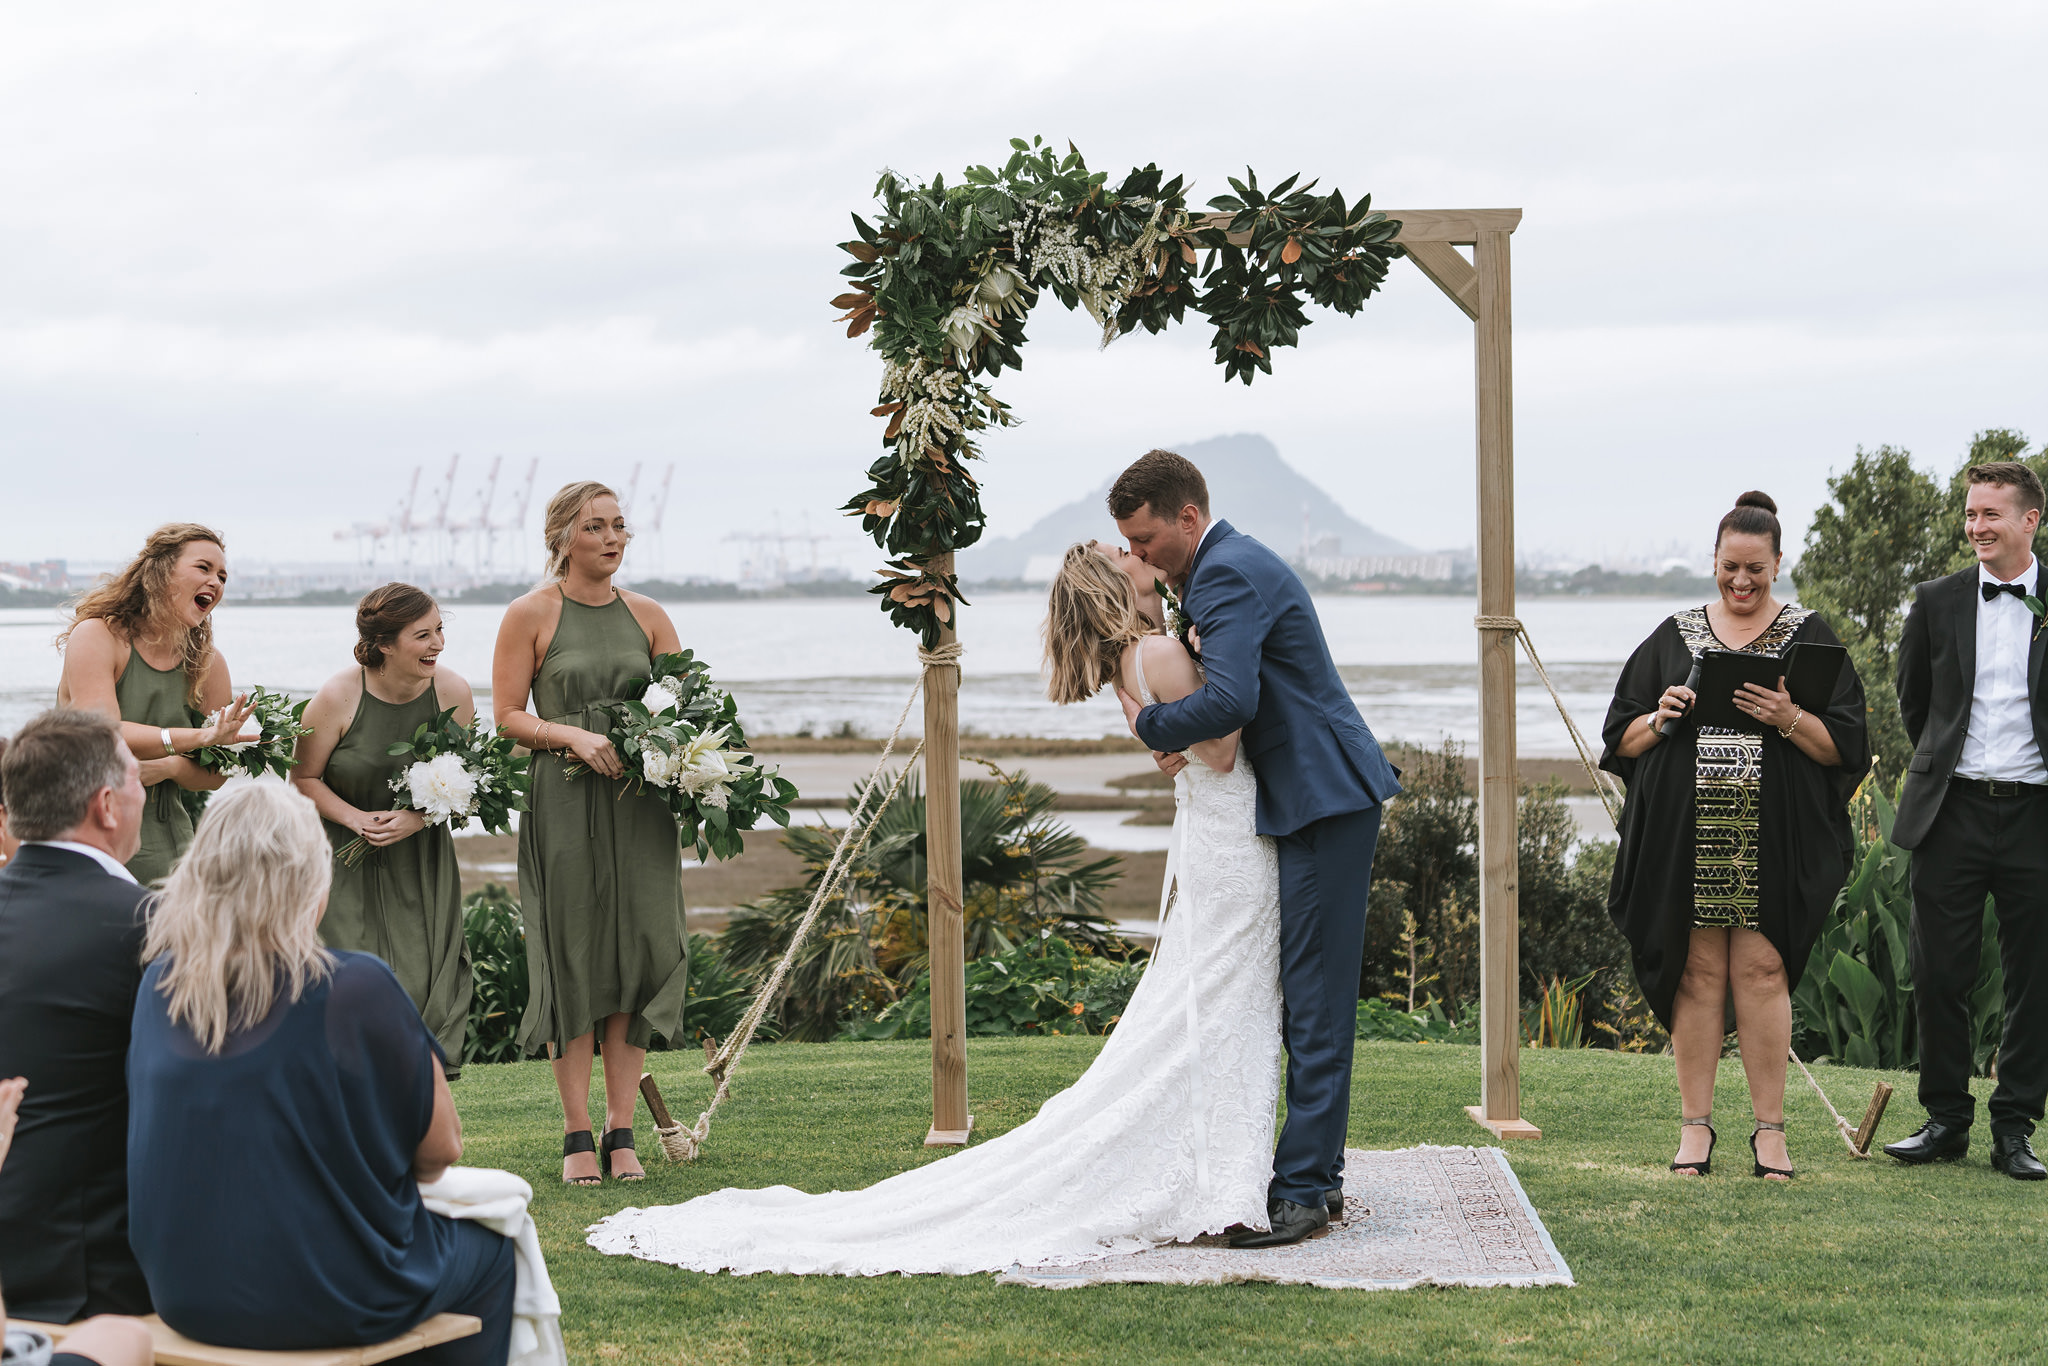 newfound-s-a-tauranga-new-zealand-wedding-photography-493